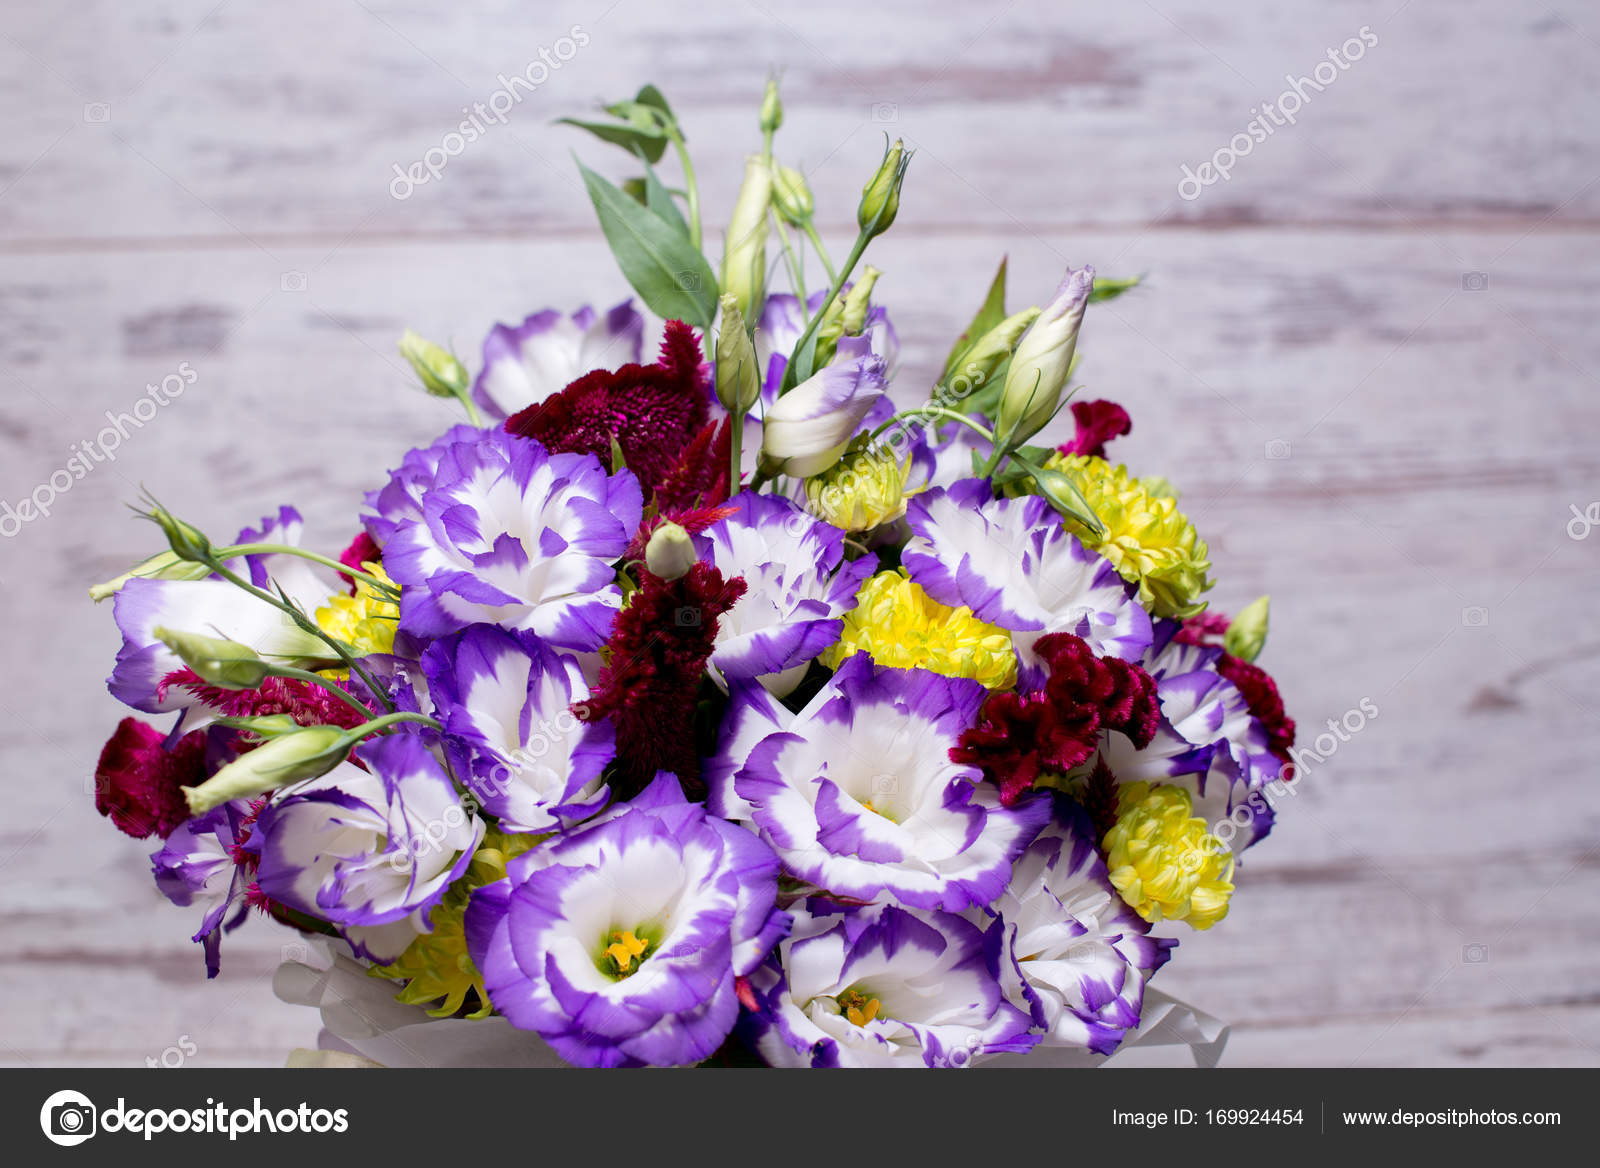 Blue And White Lisianthus Eustoma Flower Bouquet N A White Wooden